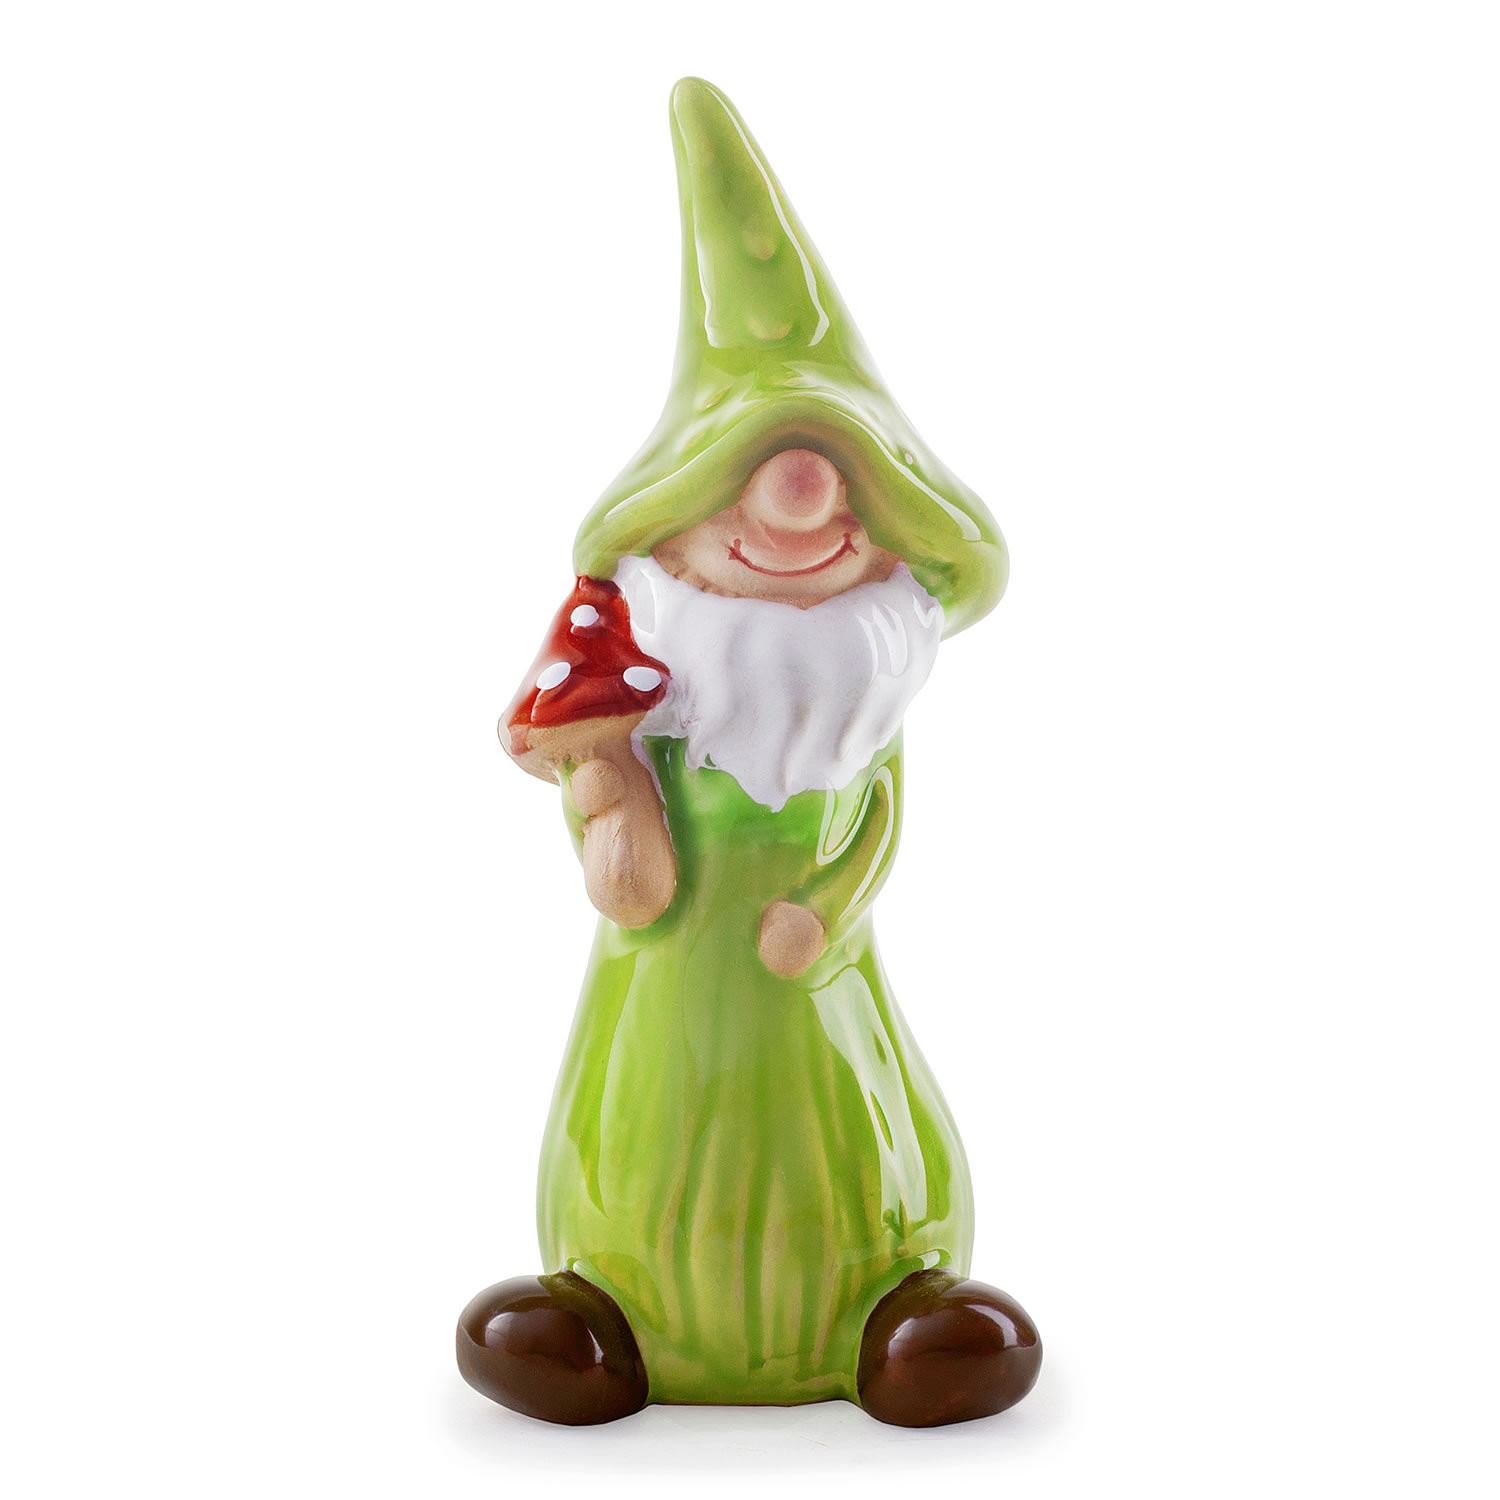 Jimmy the mushroom collecting terracotta garden gnome for Quirky ornaments